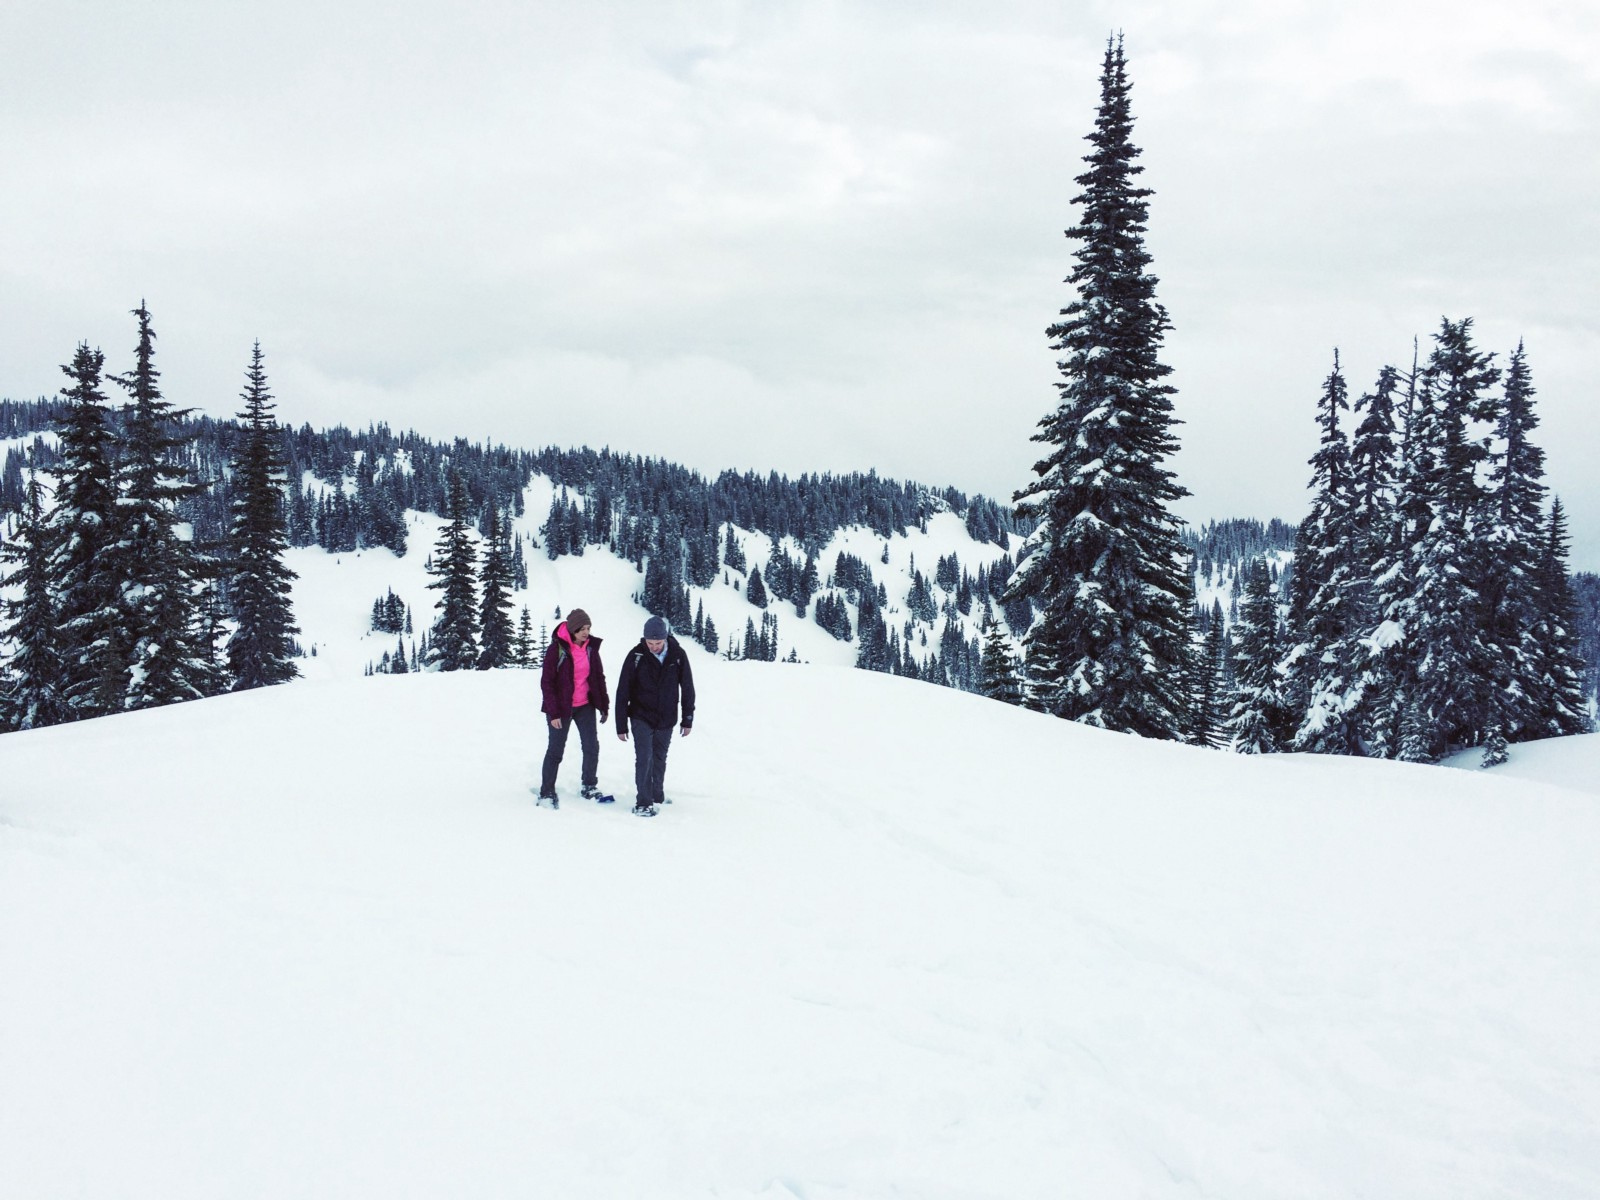 Out taking a stroll on a snow covered volcano